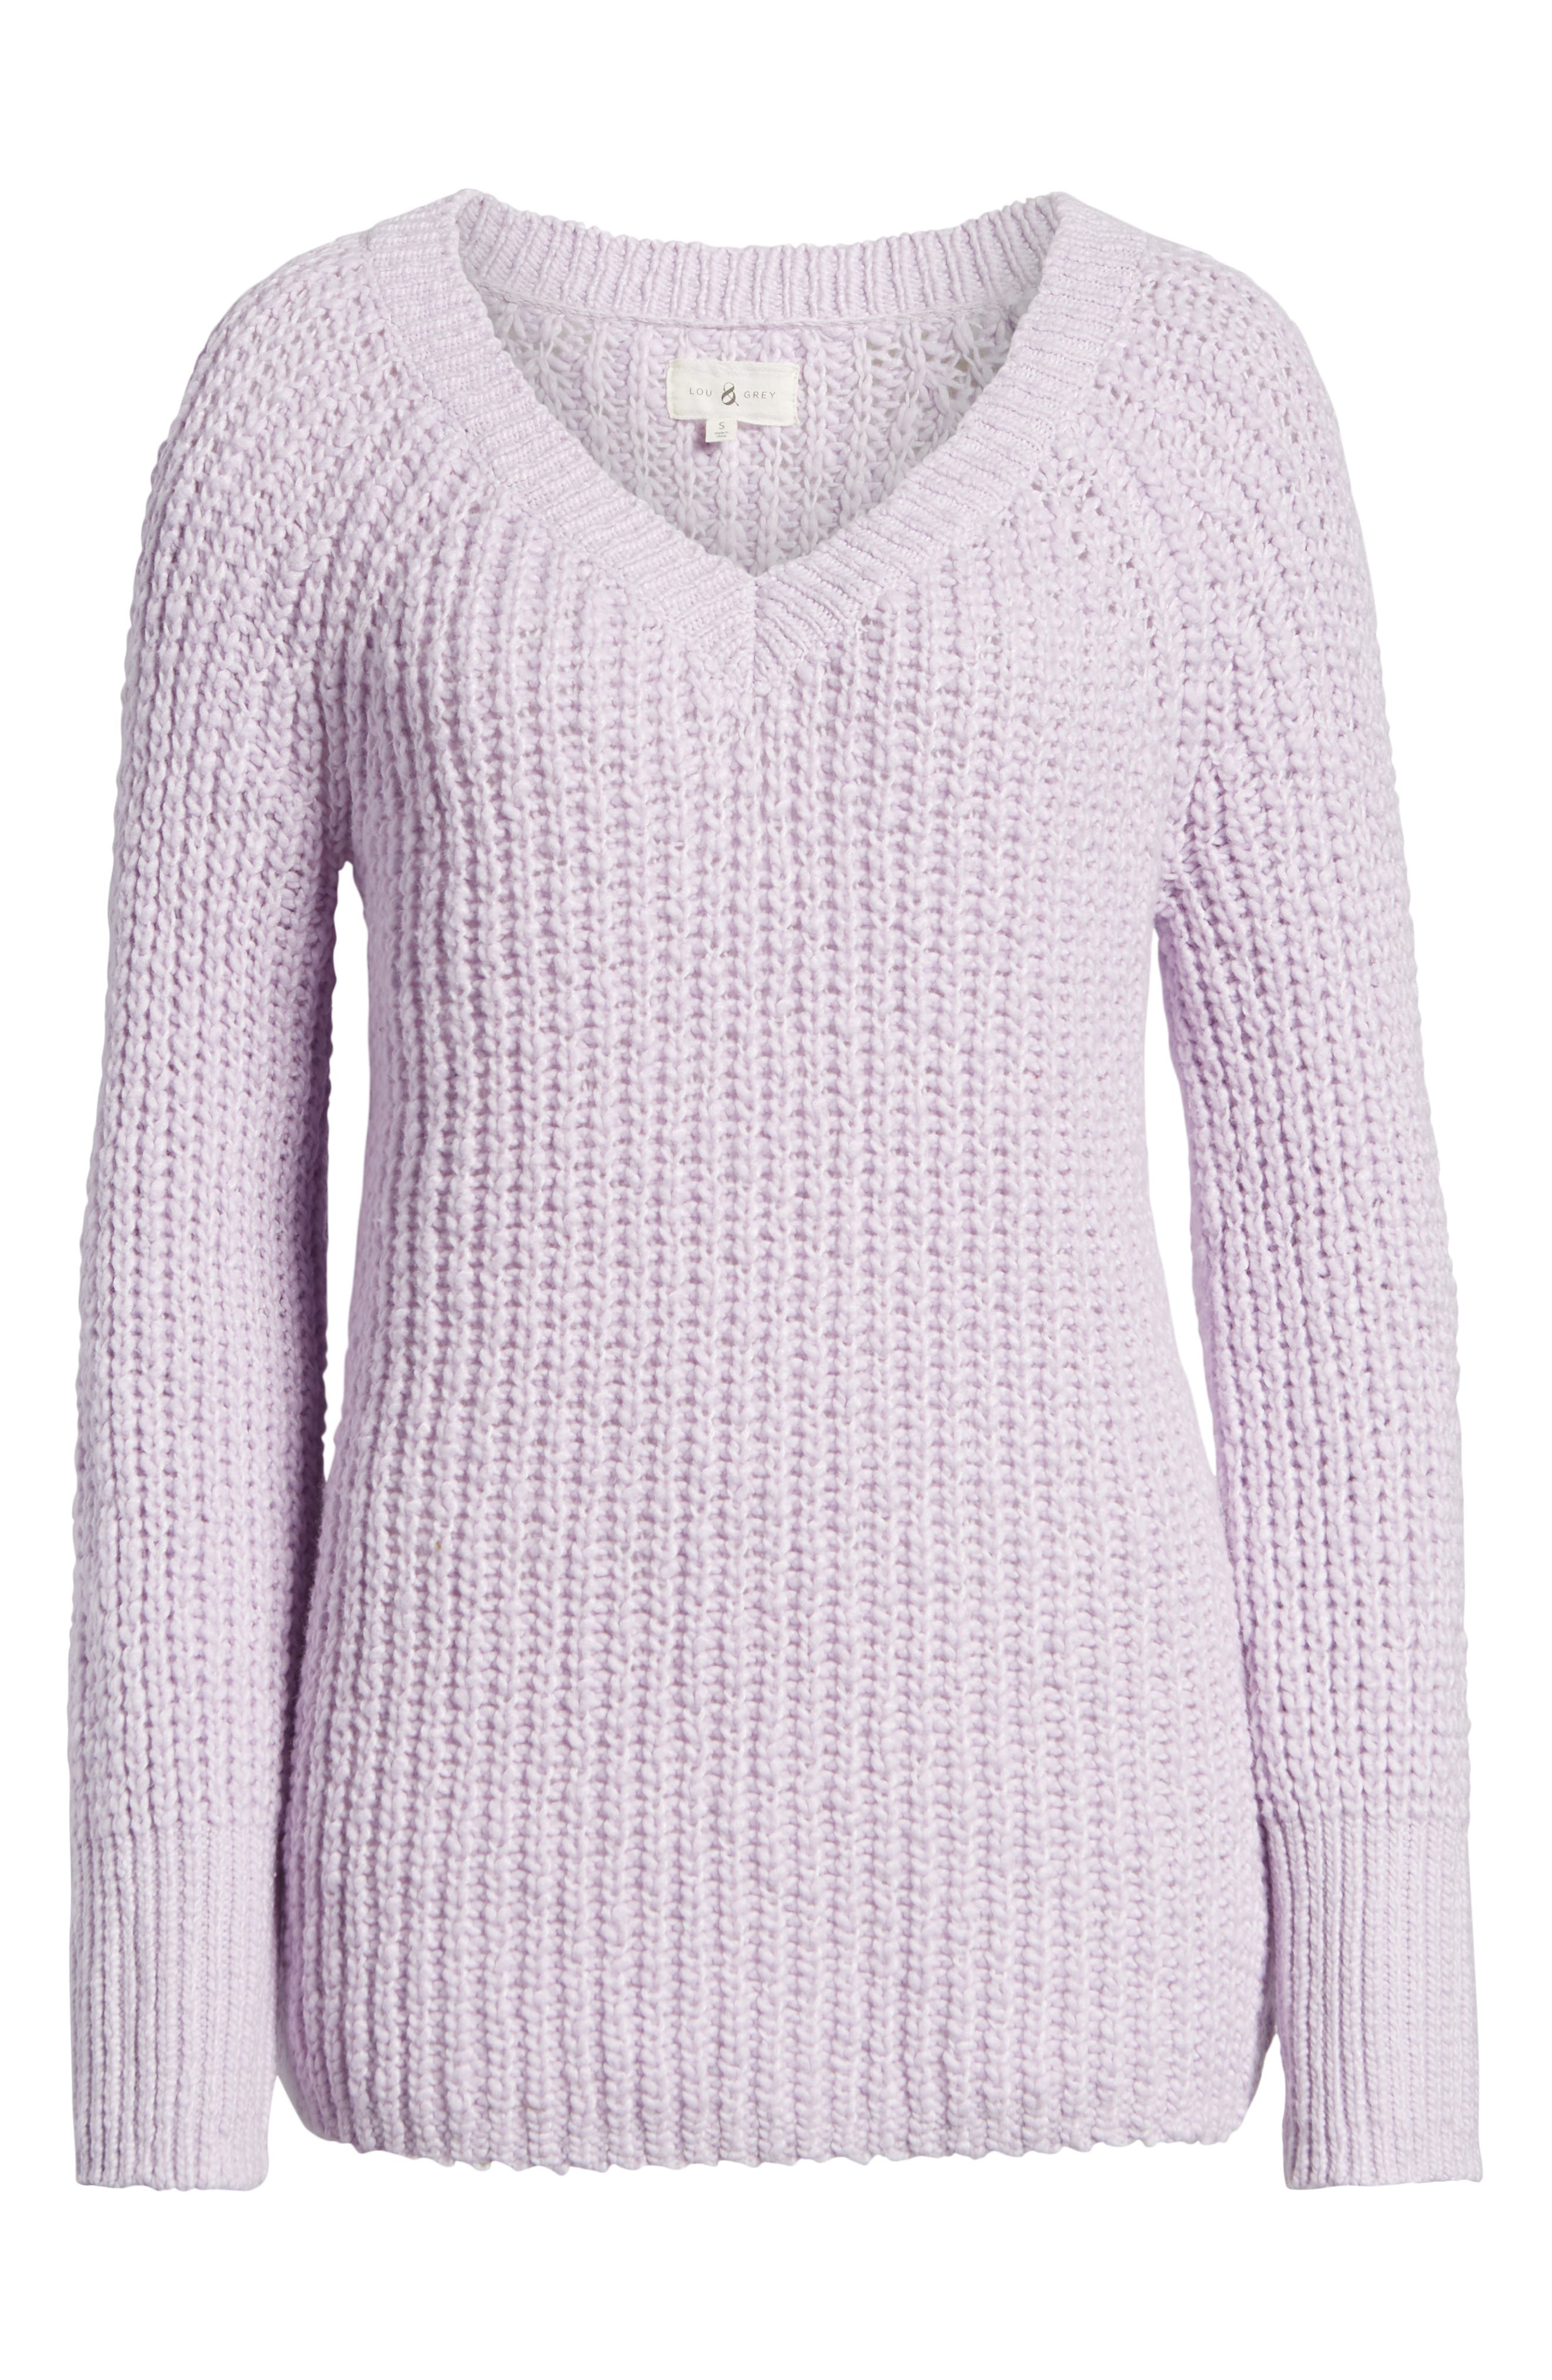 Cozystitch V-Neck Sweater,                             Alternate thumbnail 6, color,                             LILAC